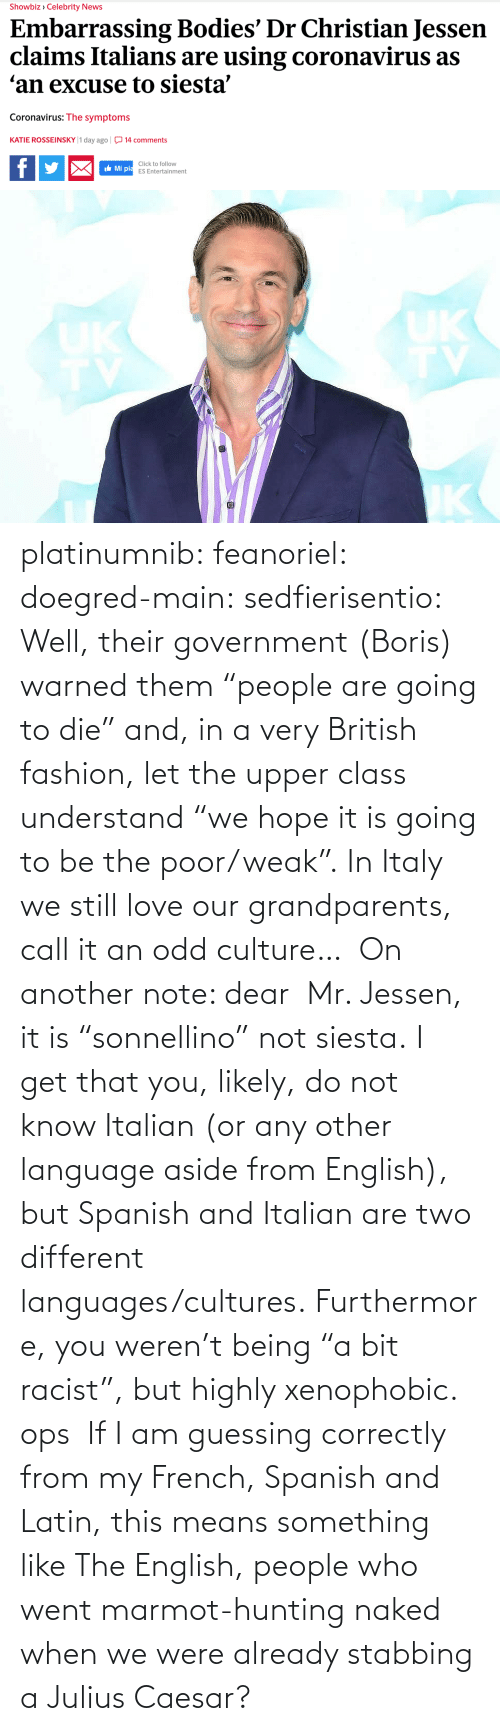 "English: platinumnib:  feanoriel: doegred-main:  sedfierisentio:  Well, their government (Boris) warned them ""people are going to die"" and, in a very British fashion, let the upper class understand ""we hope it is going to be the poor/weak"". In Italy we still love our grandparents, call it an odd culture…  On another note: dear  Mr. Jessen, it is ""sonnellino"" not siesta. I get that you, likely, do not know Italian (or any other language aside from English), but Spanish and Italian are two different languages/cultures. Furthermore, you weren't being ""a bit racist"", but highly xenophobic.   ops   If I am guessing correctly from my French, Spanish and Latin, this means something like The English, people who went marmot-hunting naked when we were already stabbing a Julius Caesar?"